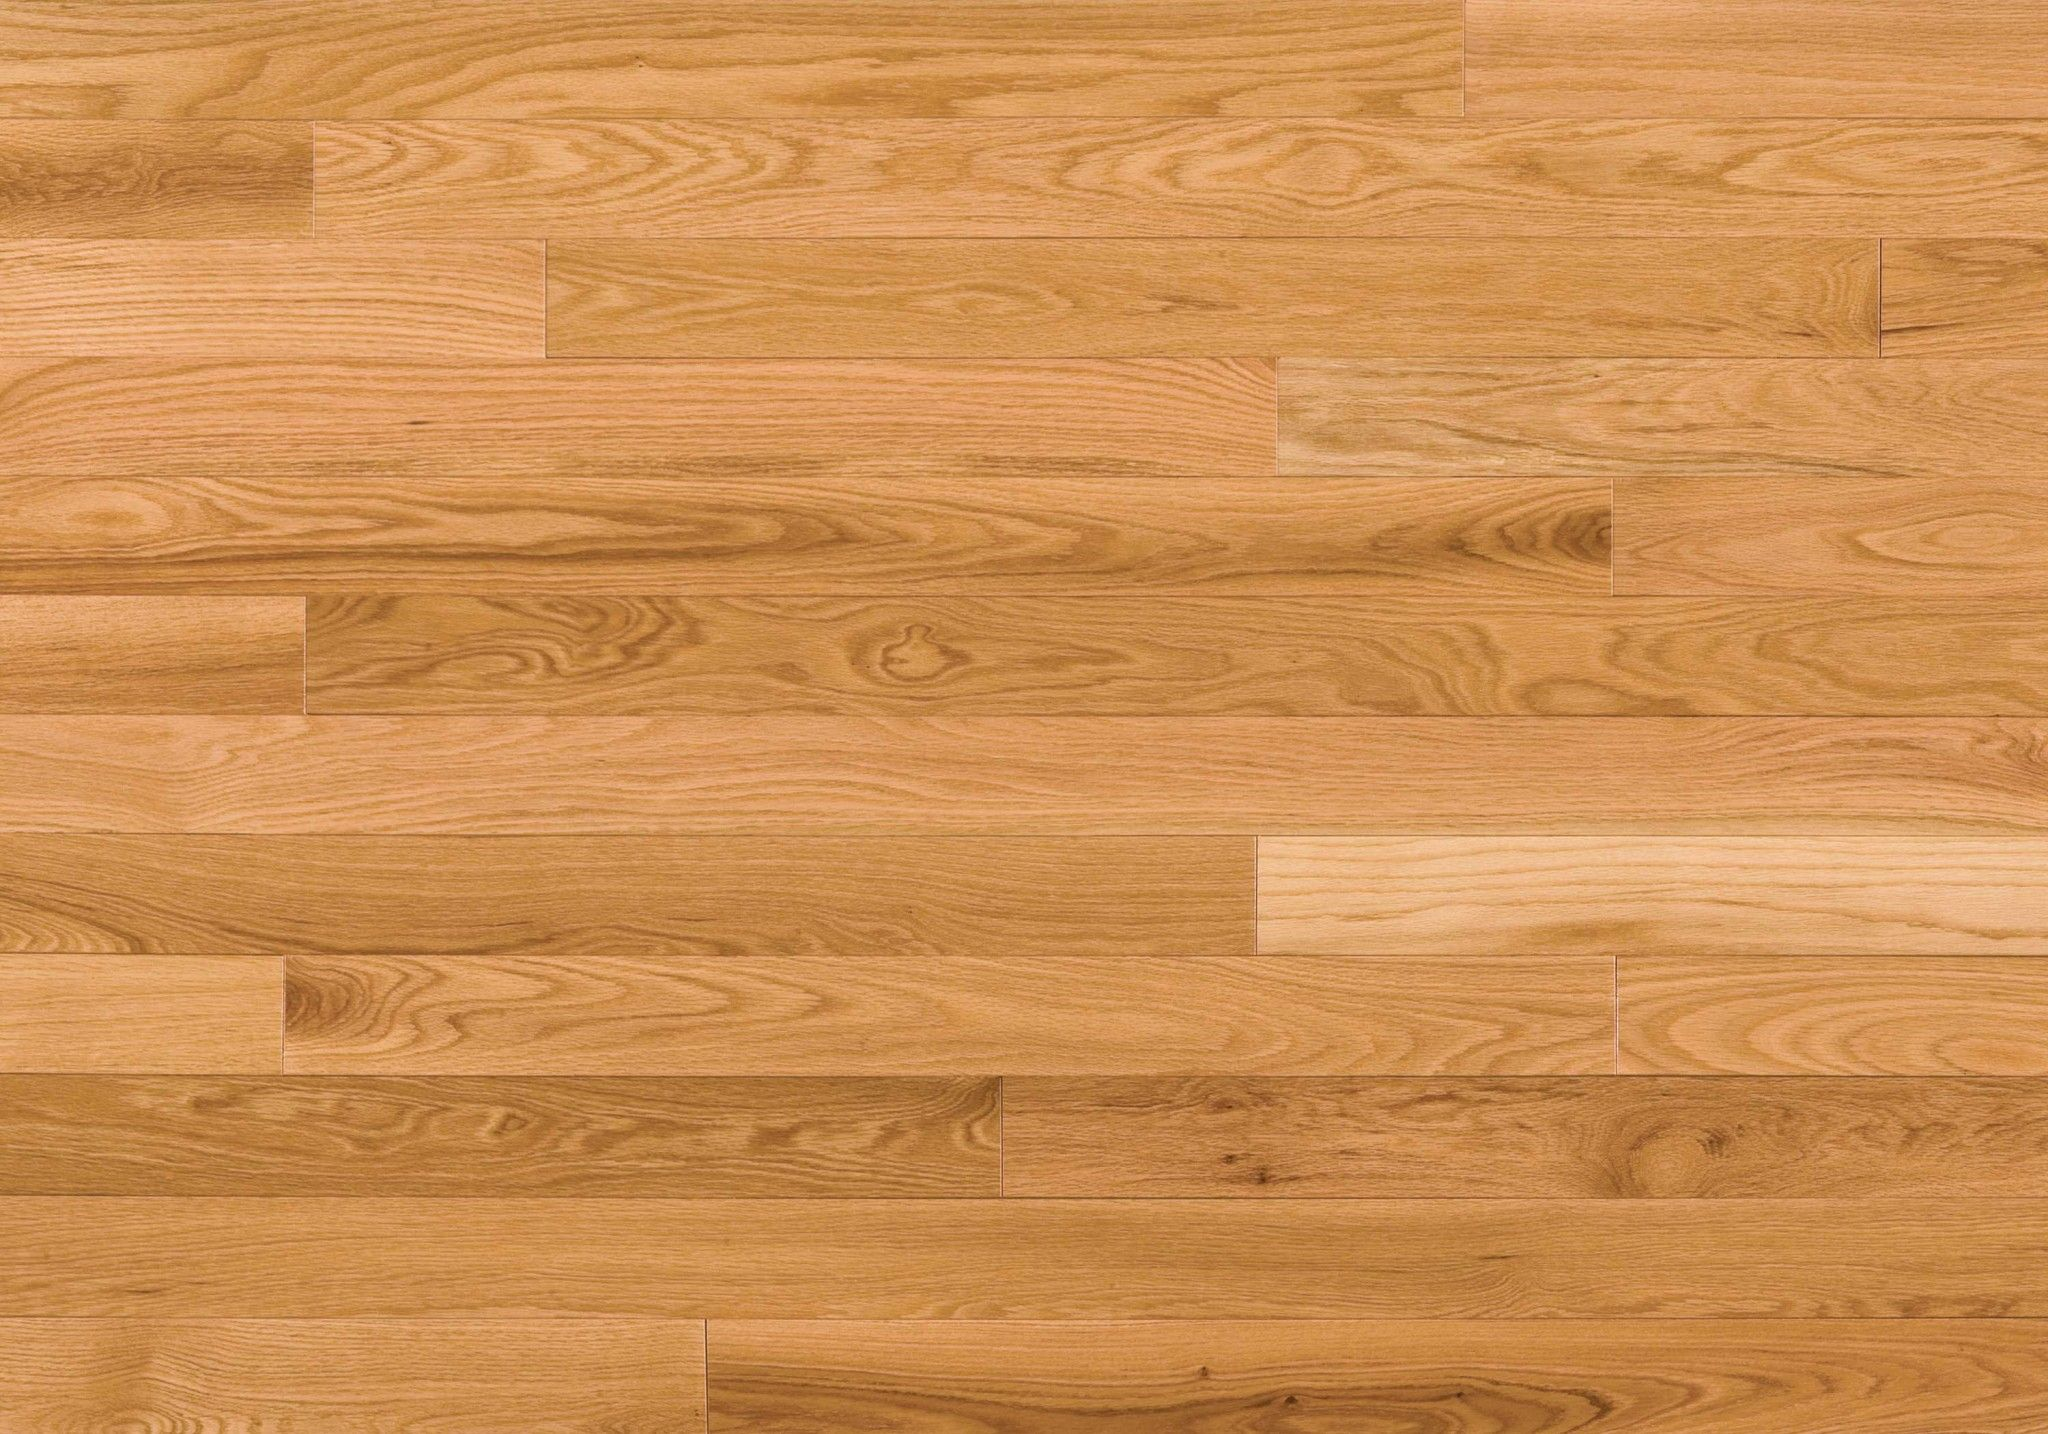 Procedure for sanding hardwood floors Oak wood texture